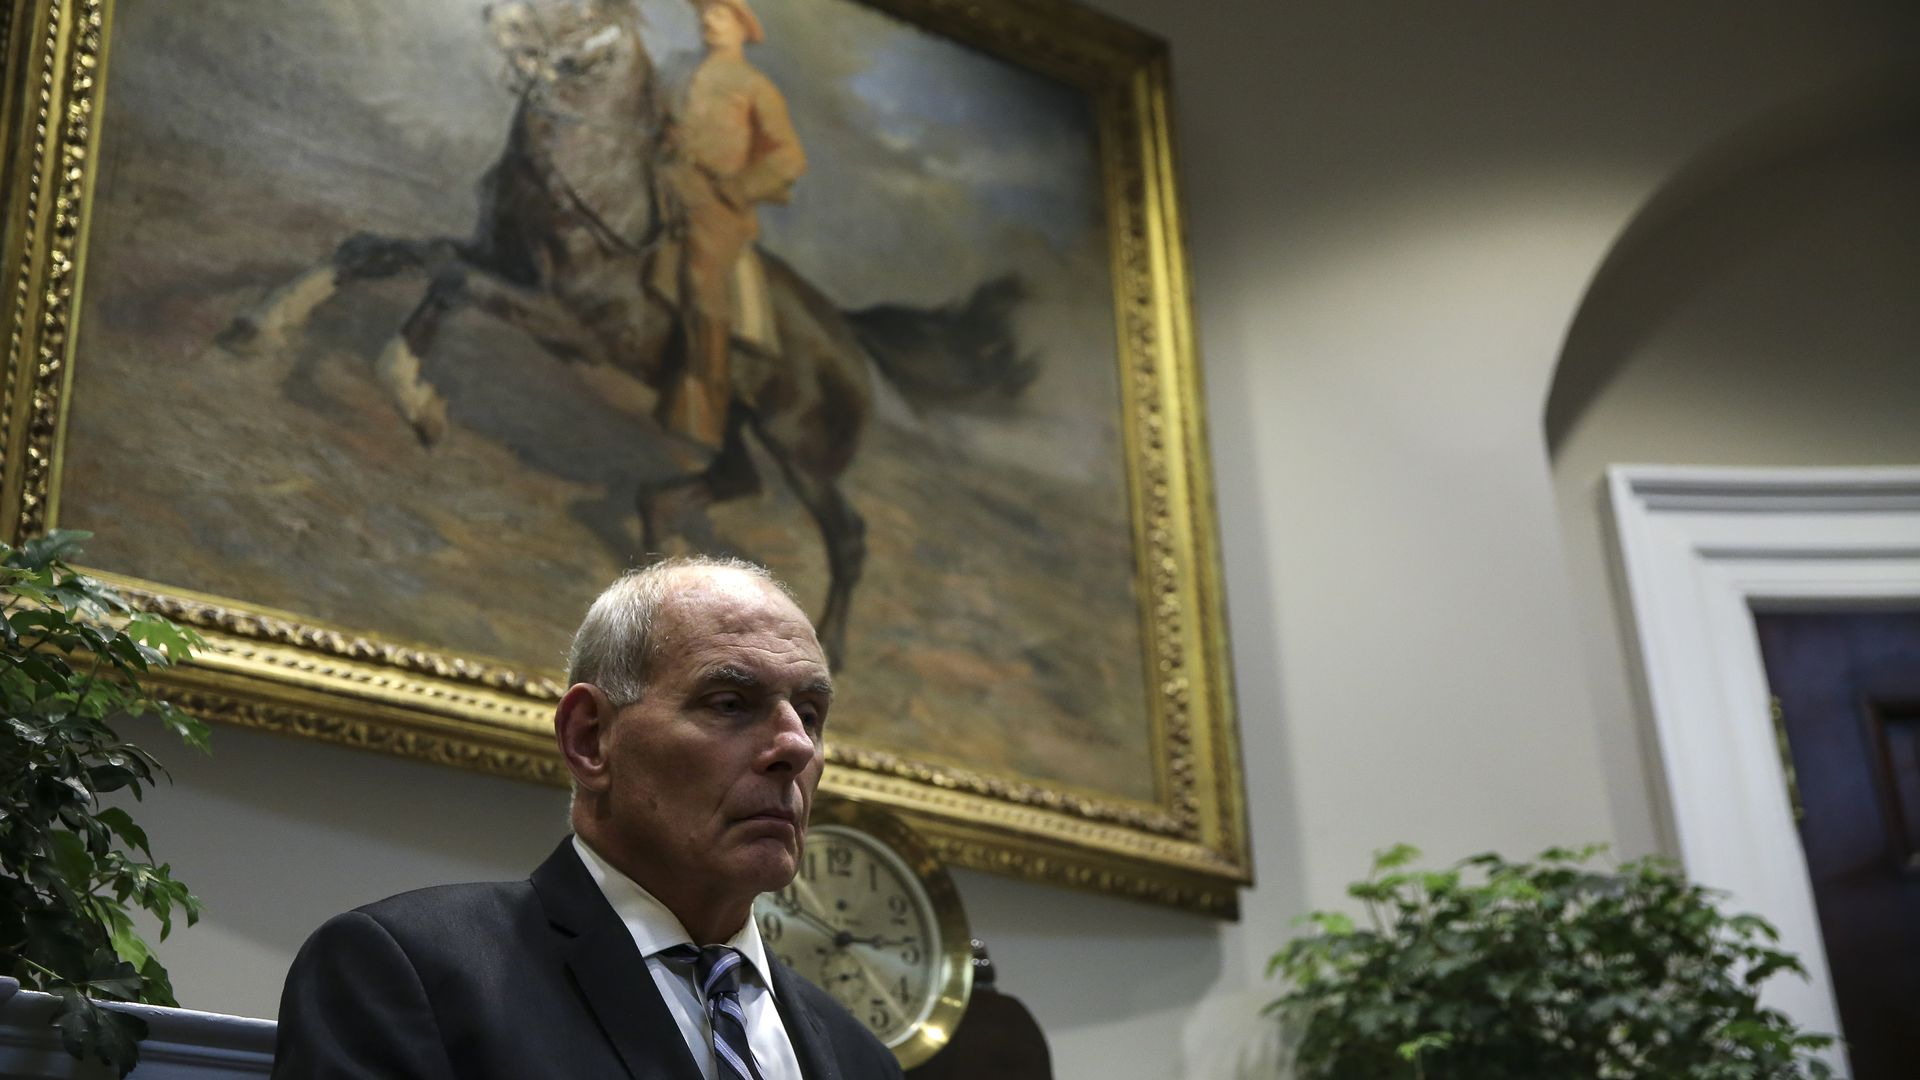 White House Chief of Staff John Kelly: Photo by Oliver Contreras - Pool/Getty Images